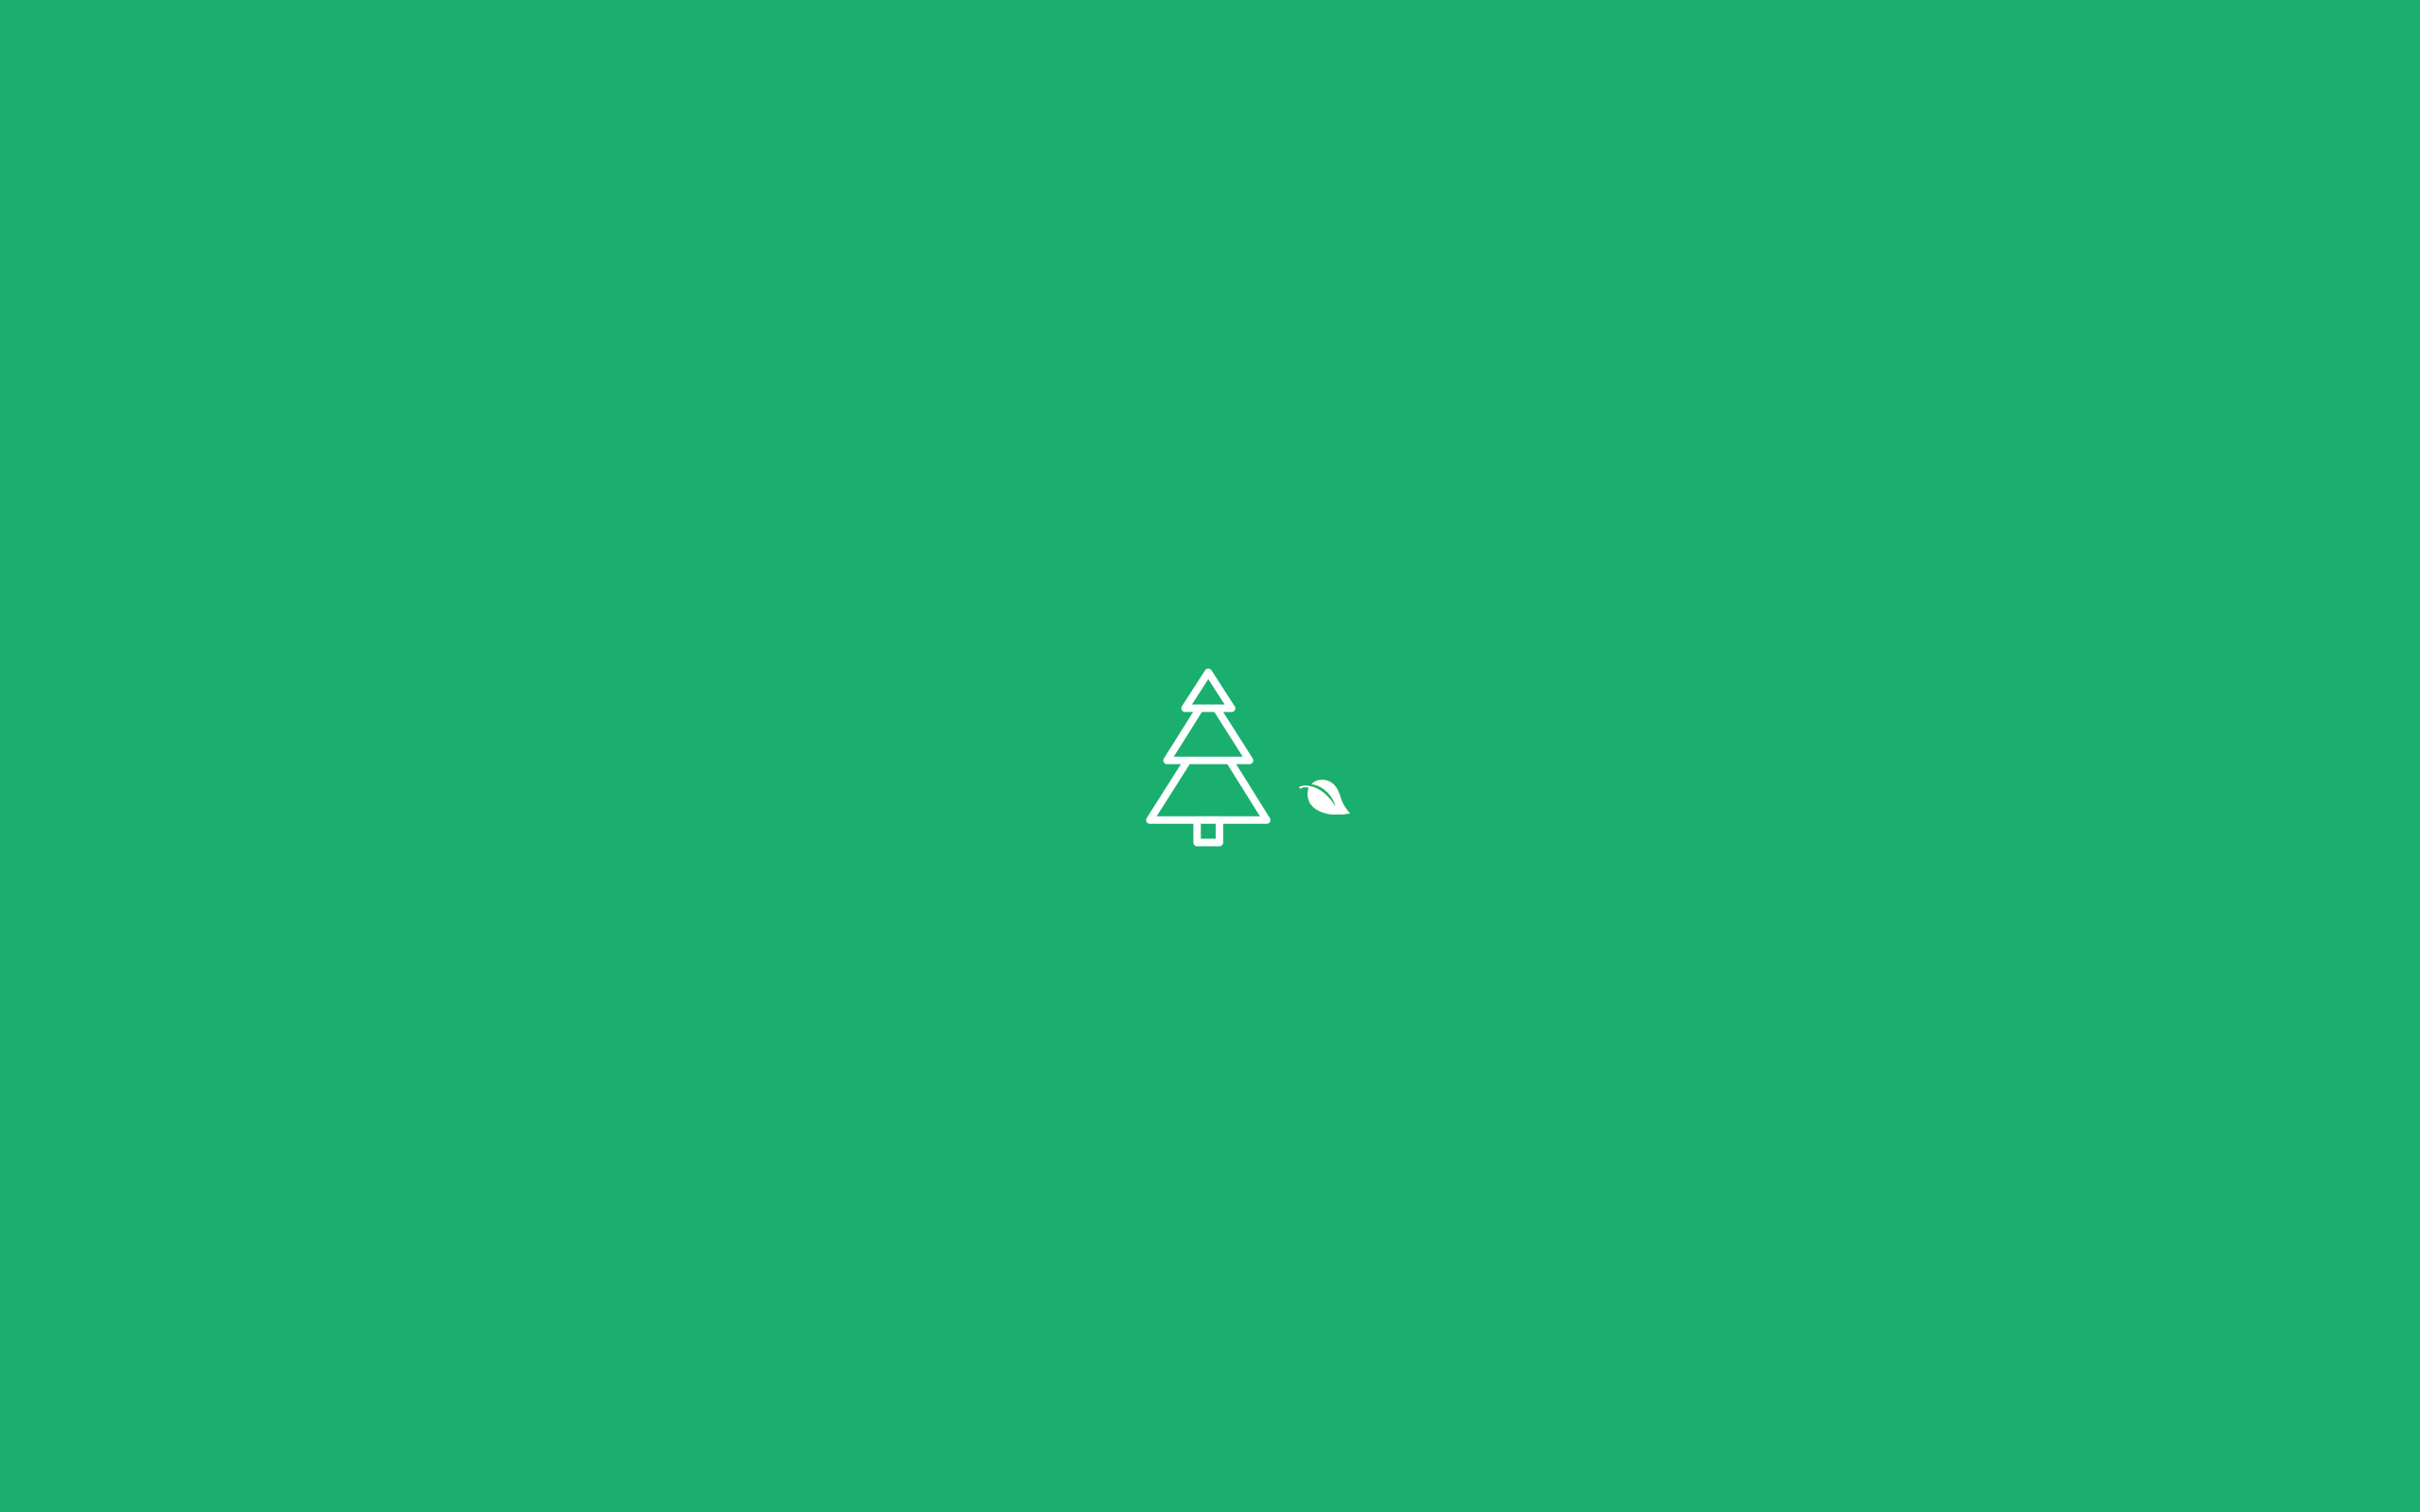 Green Minimalistic Wallpapers - Top Free Green ...